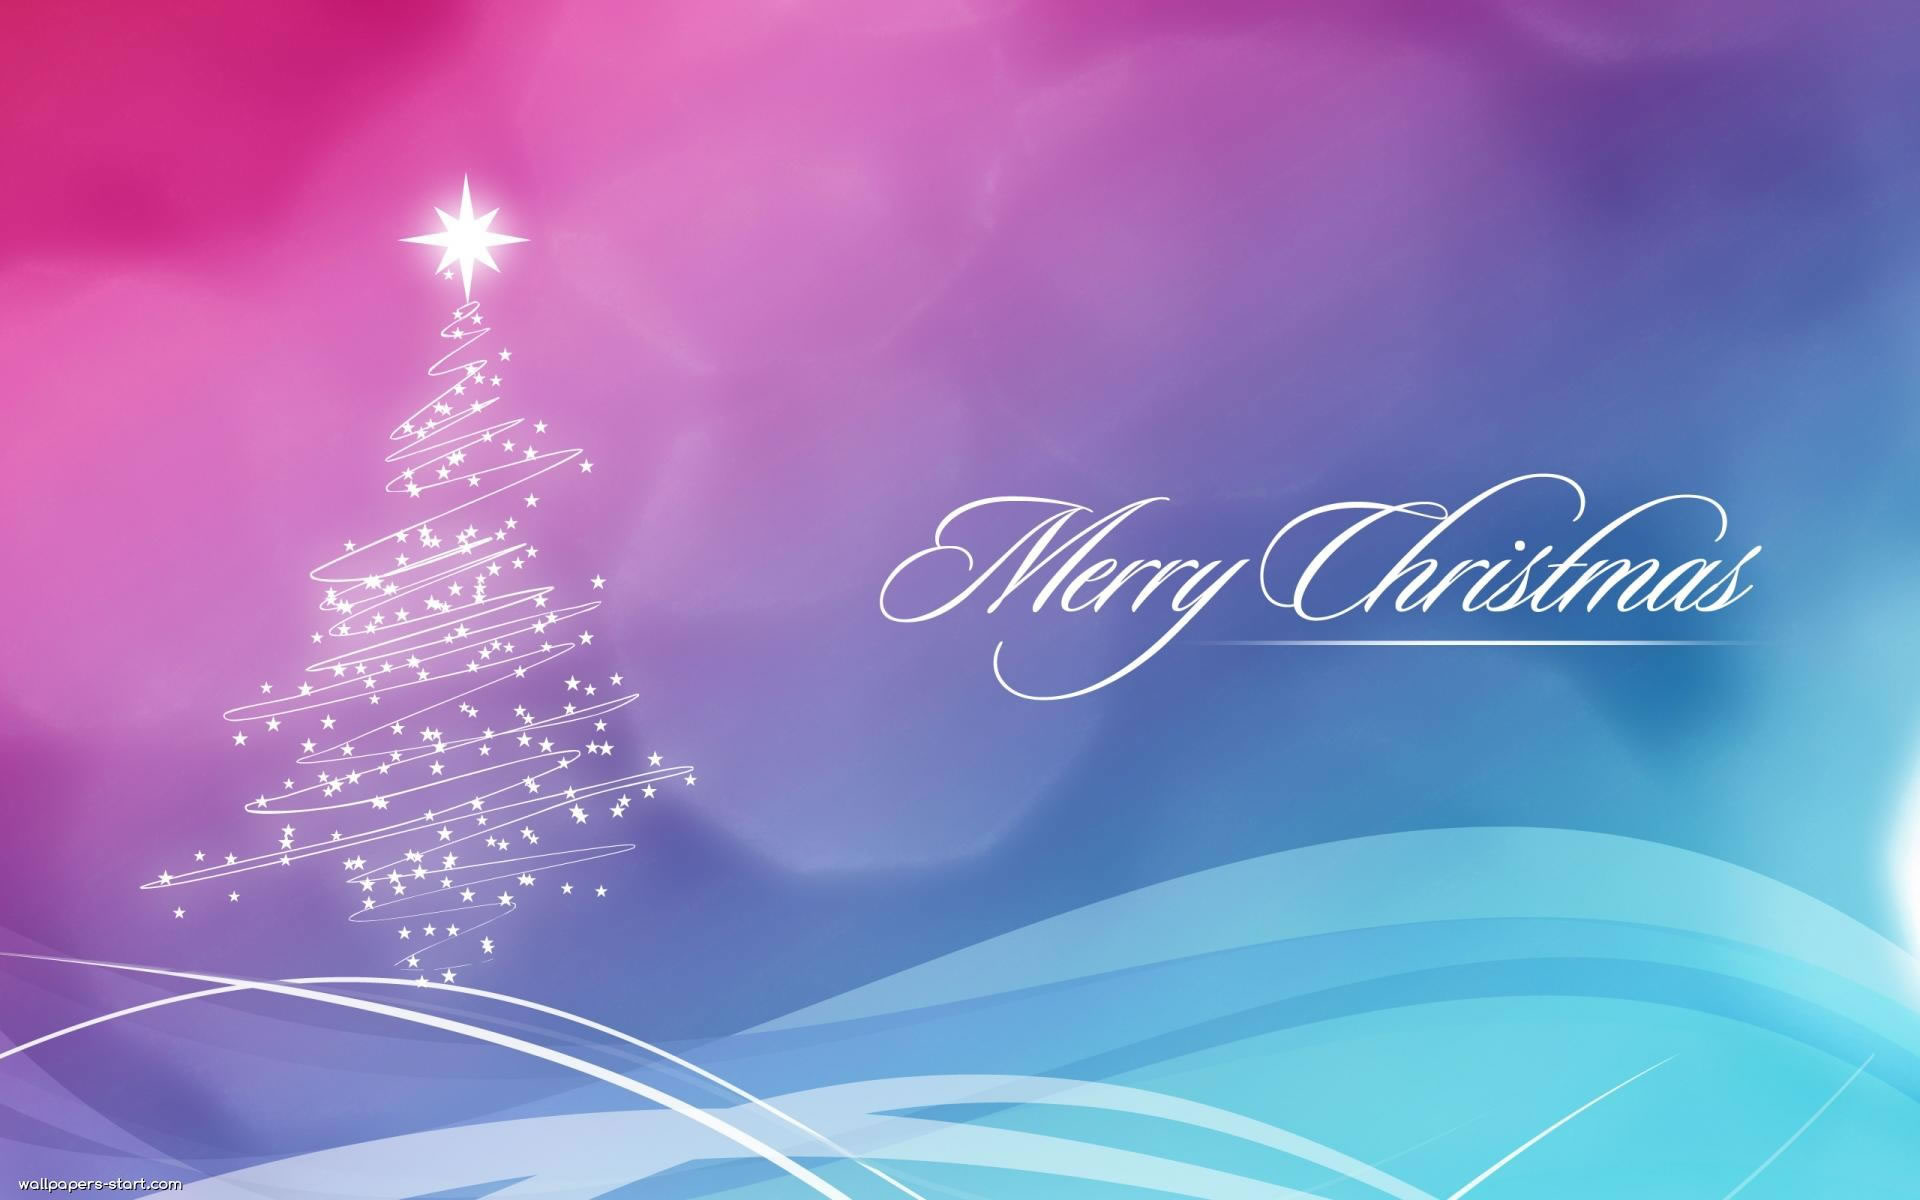 Wallpaper de Navidad en tonos suaves - Wallpapers